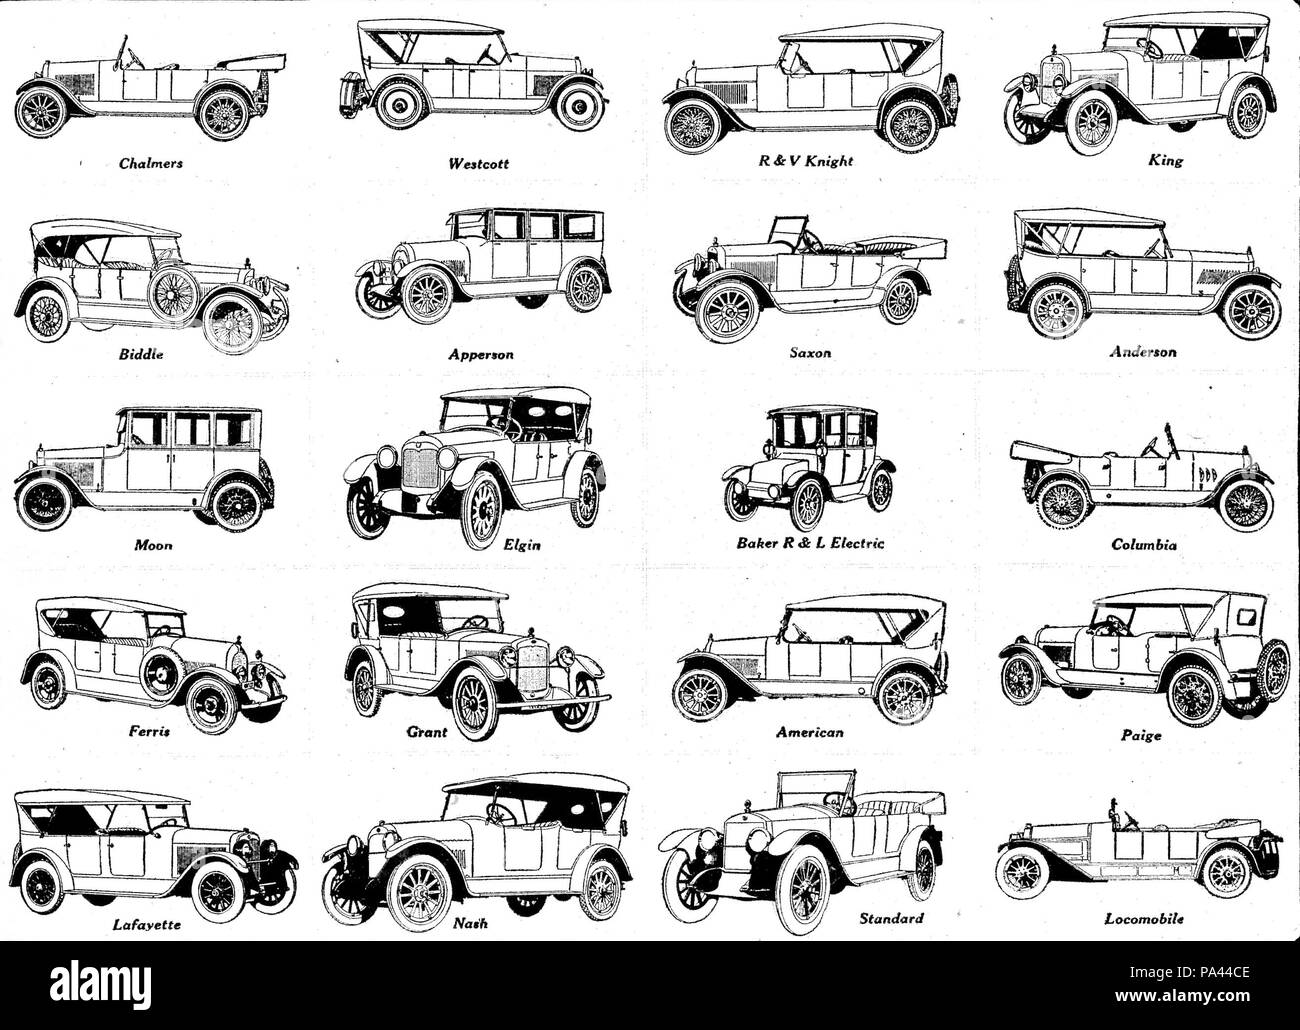 Firestone Black And White Stock Photos Images Alamy Wiring Diagram For 1920 21 Apperson 38 Equipped Cars 2 Image